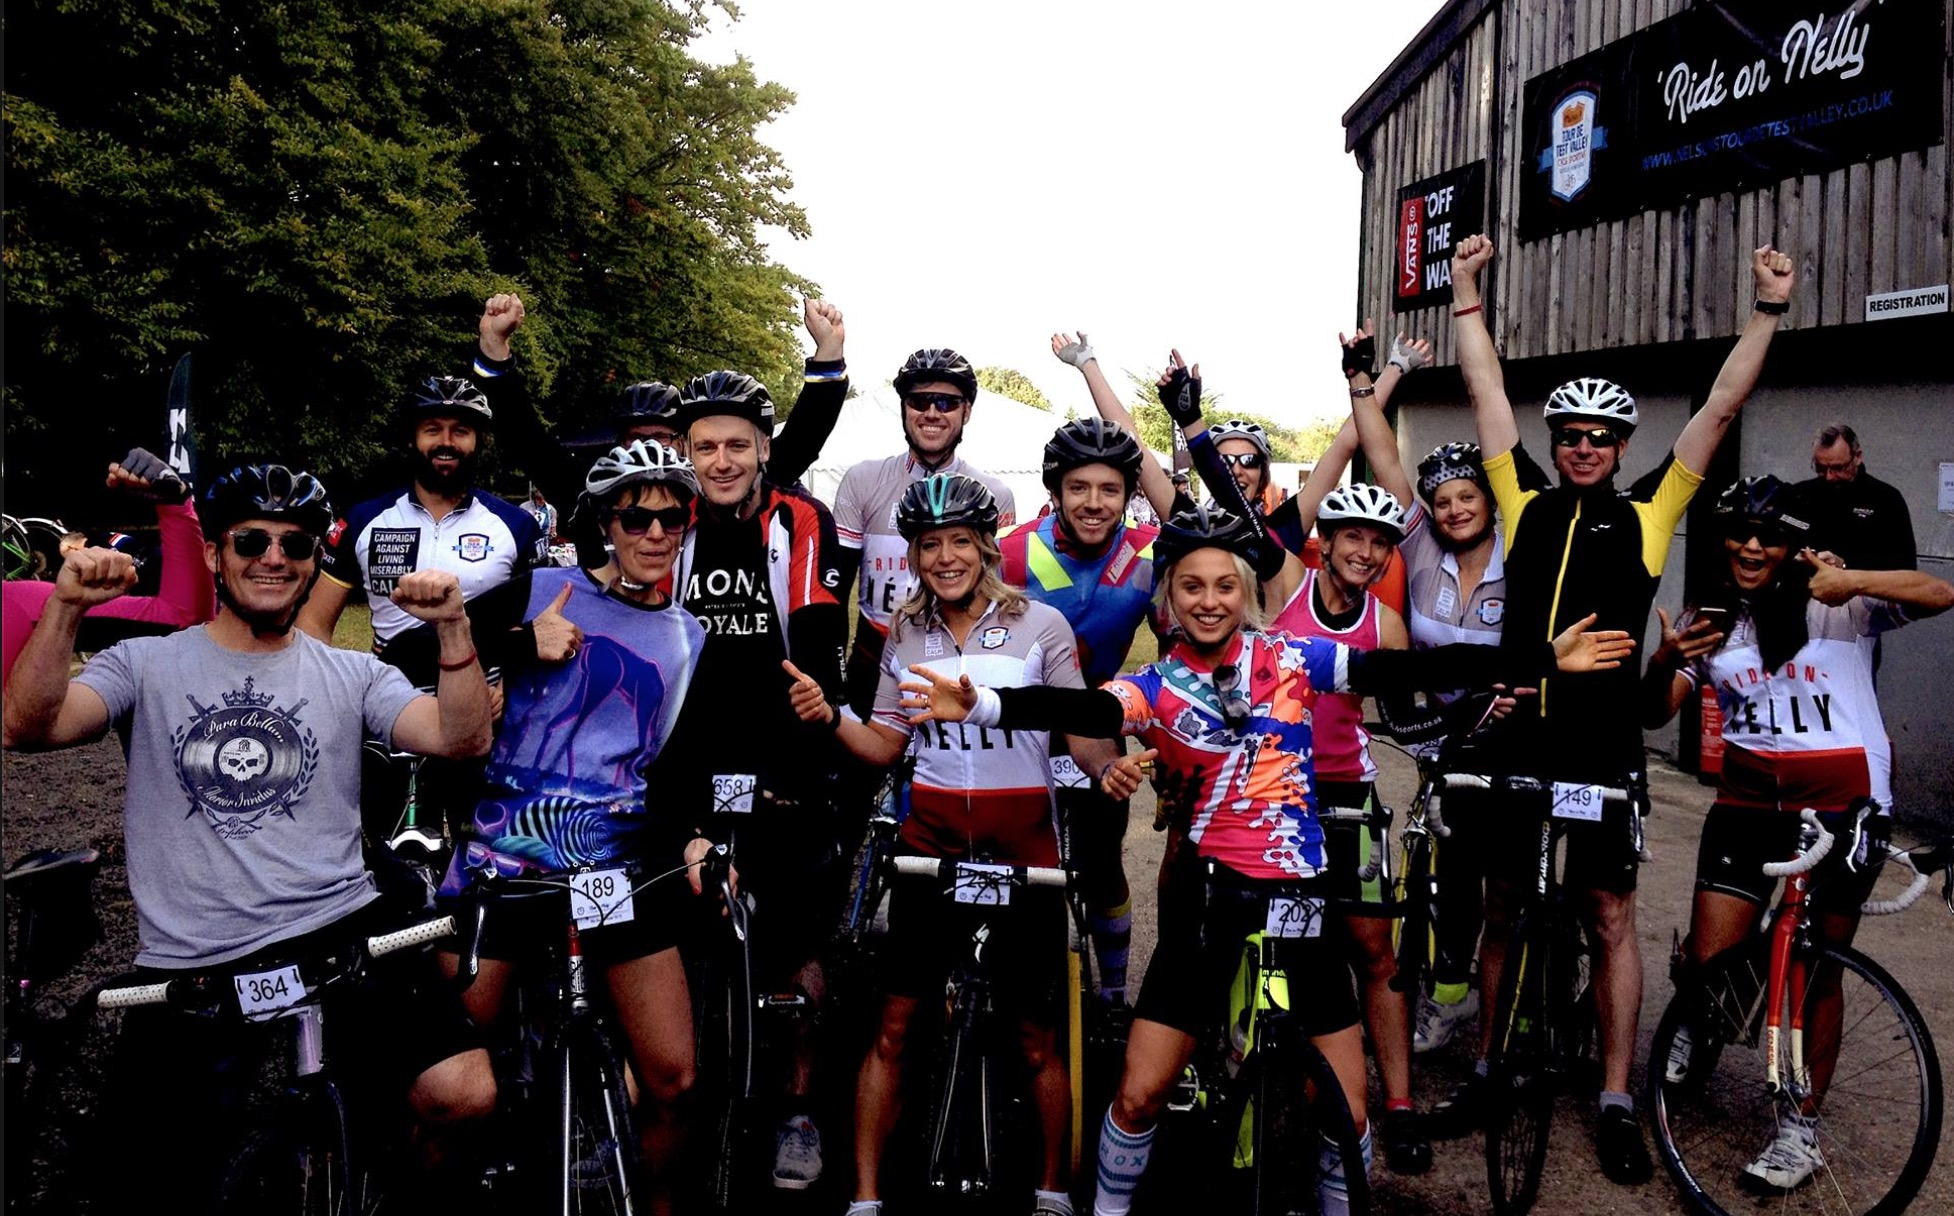 THE START of 50 Miles with the team!